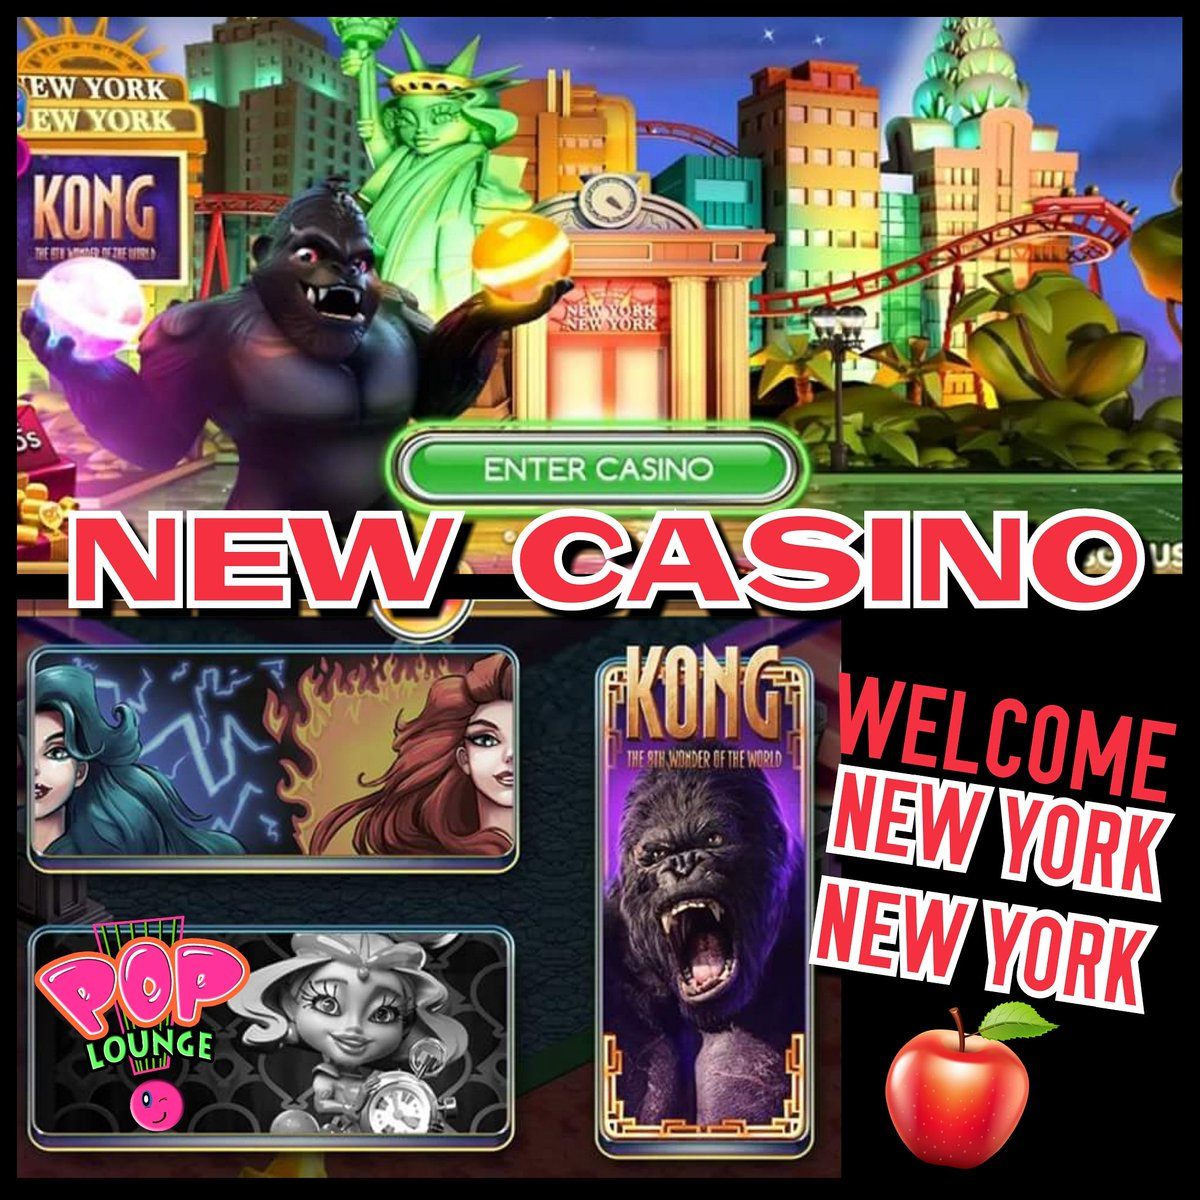 apollo casino no deposit bonus codes 2019